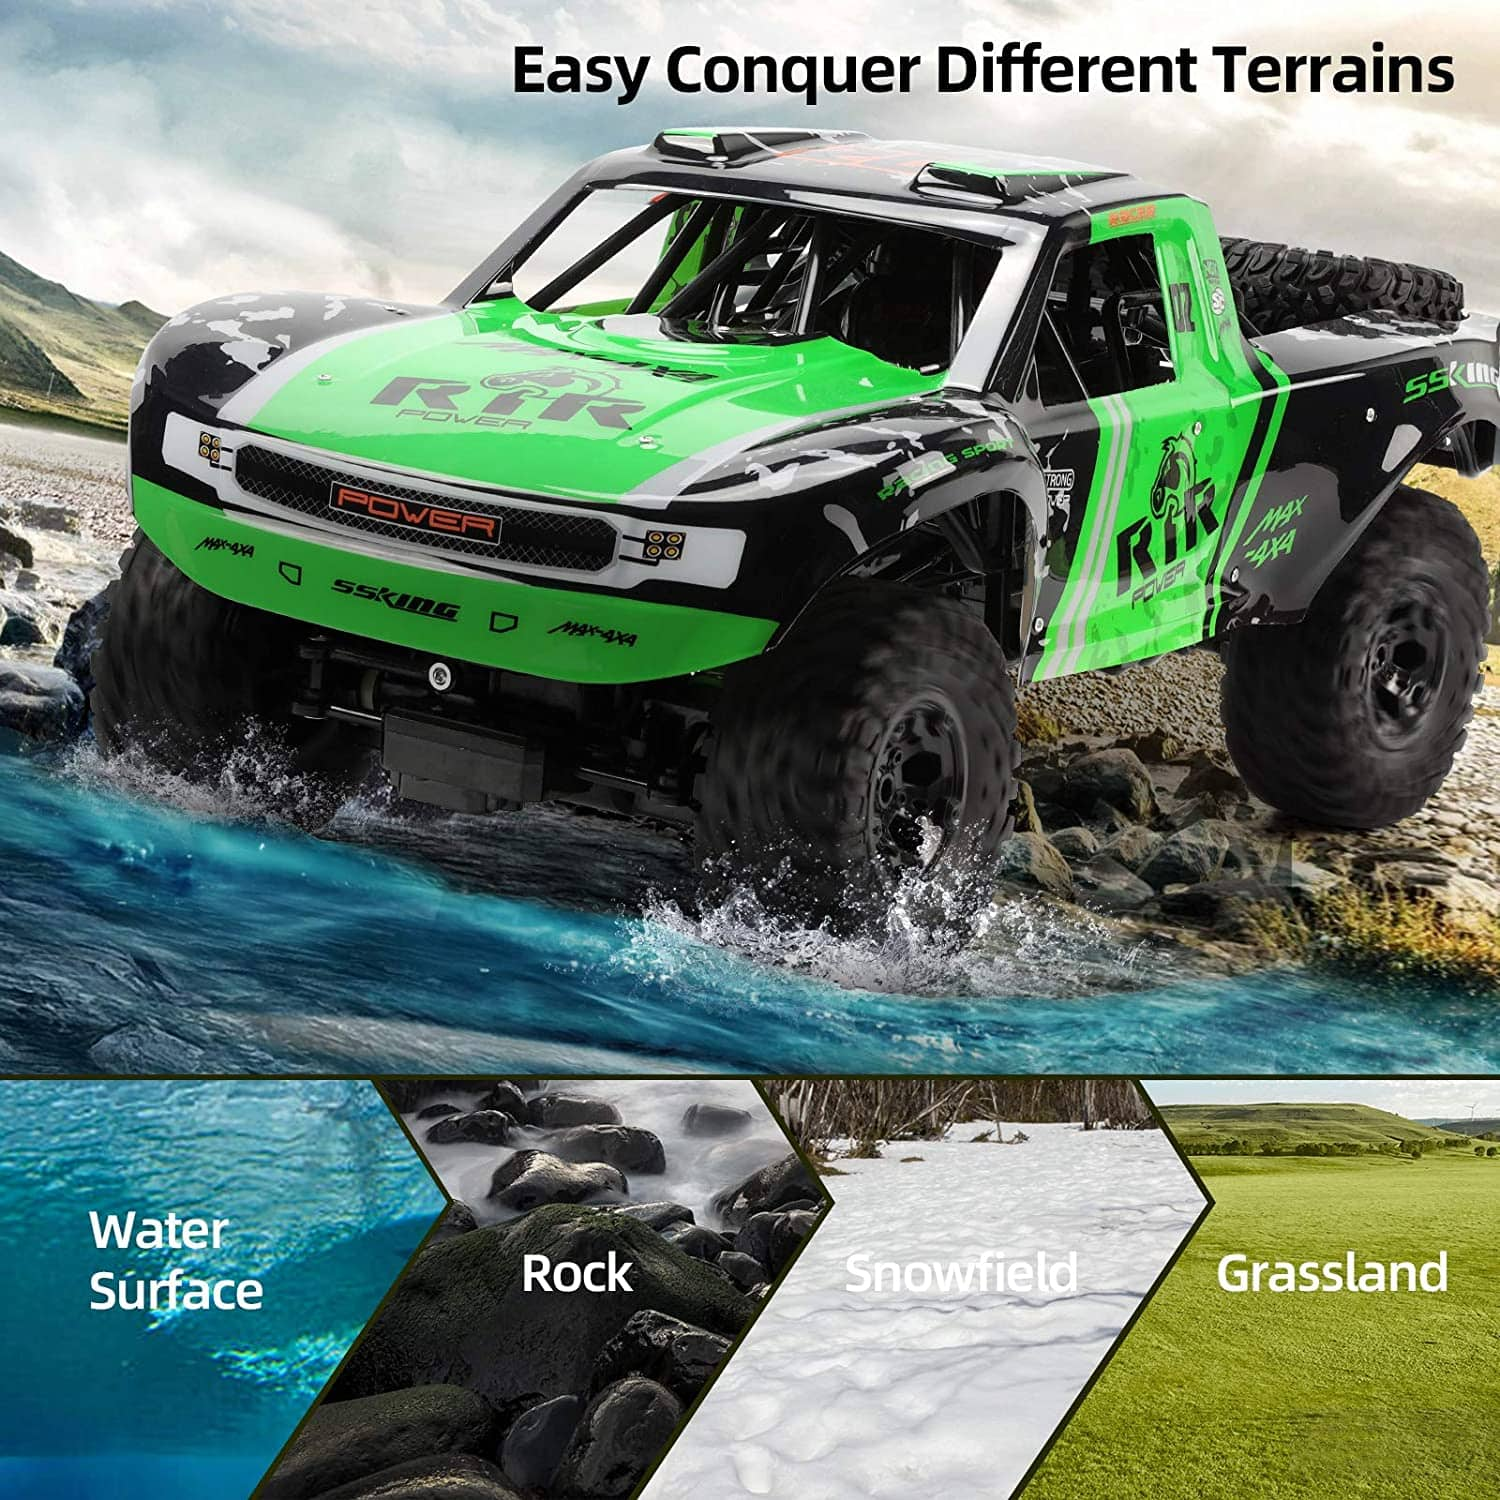 Ruko C11 Amphibious RC Cars 1:10 Scale Large Monster Truck, 2.4 GHz Waterproof Remote Control Car, 4WD Off Road Vehicle with 2 Rechargeable Batteries $100